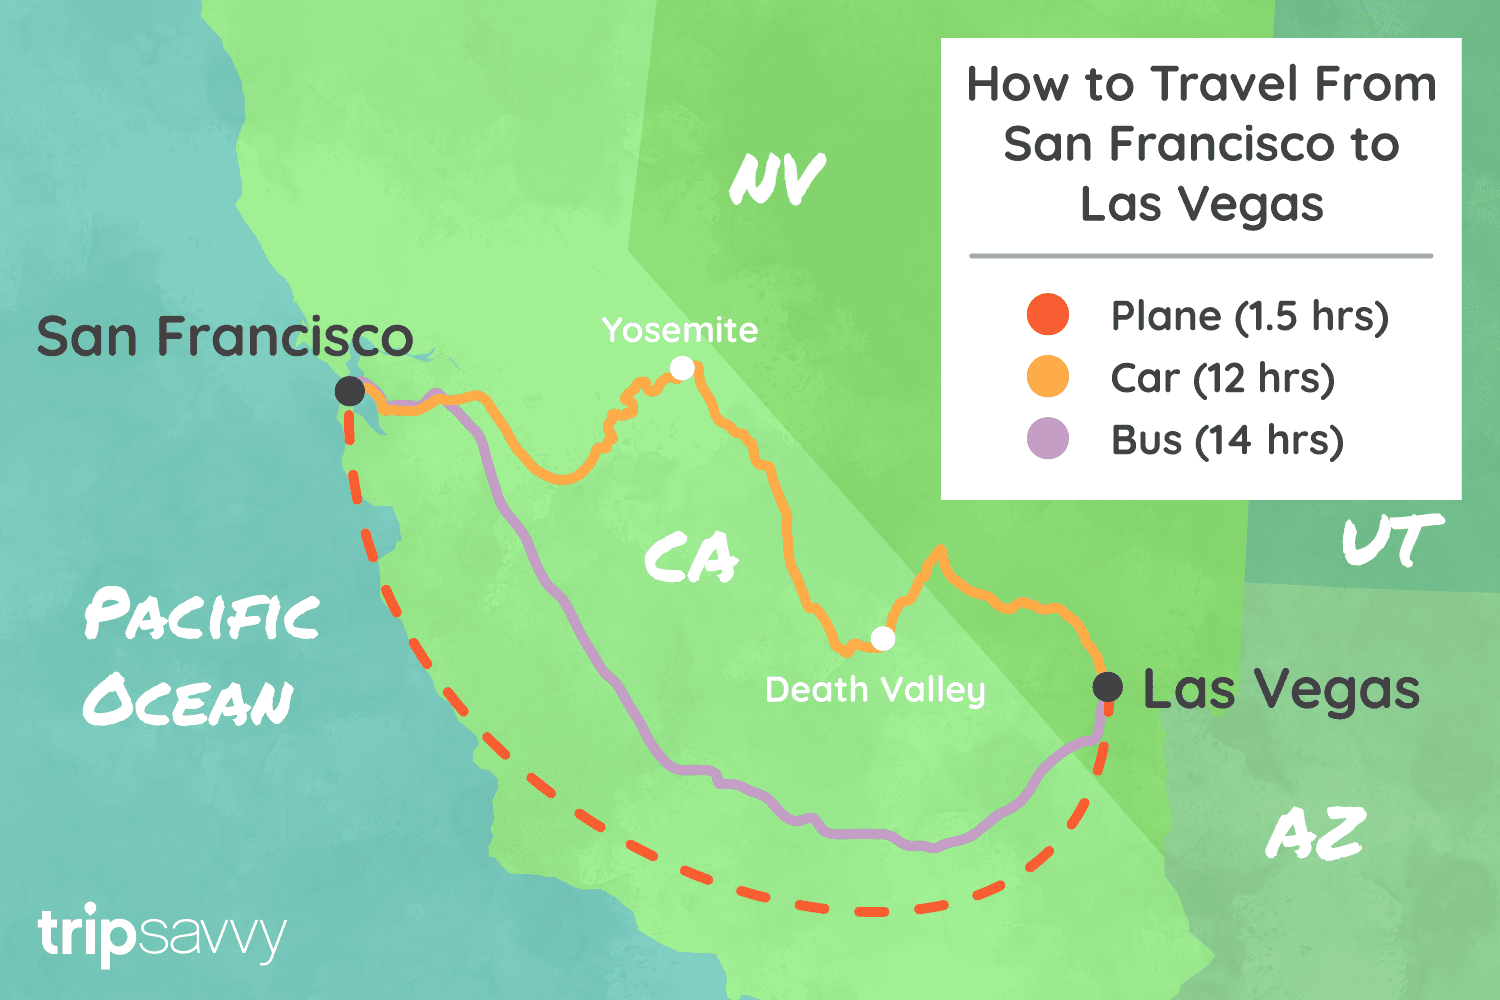 How to Get From San Francisco to Las Vegas